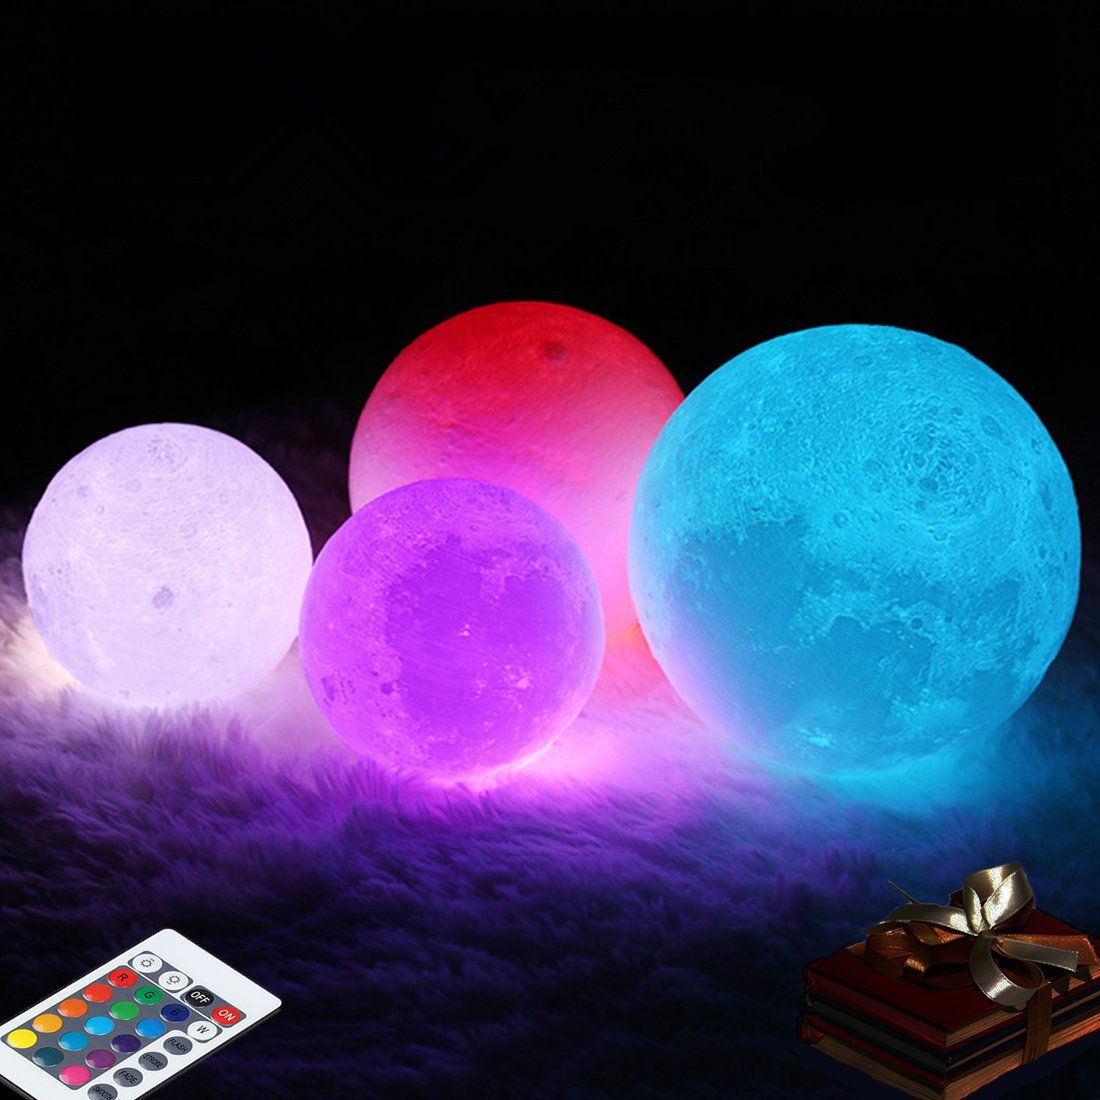 Decbest 3d Moon Lamp 16 Color Changing Usb Charging Led Night Light